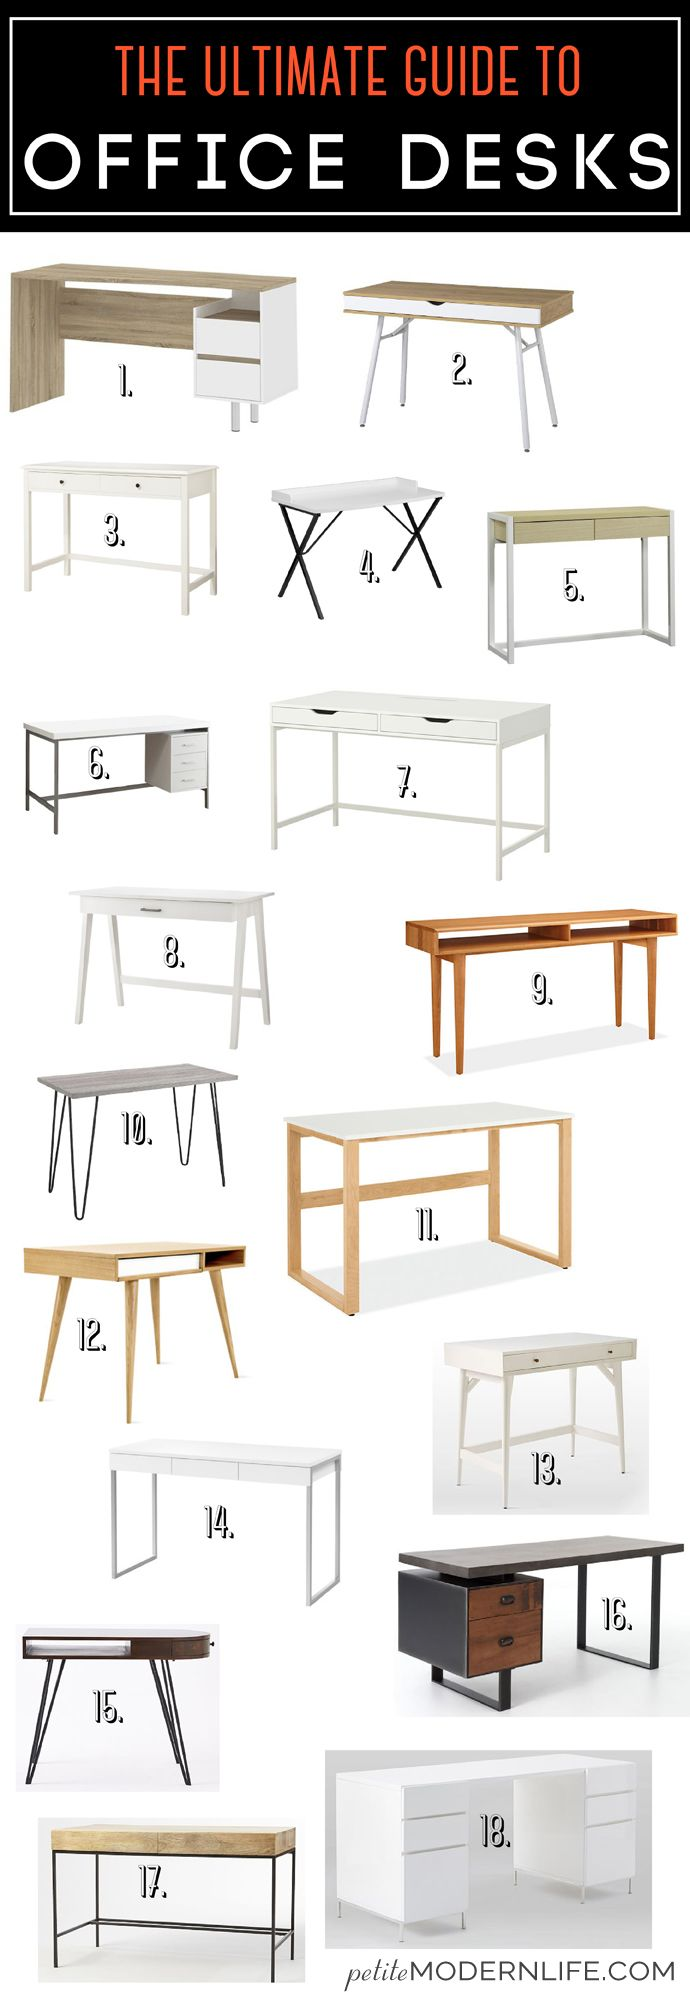 The ultimate guide to office desks! Of course any desk can be dressed up with a name plate!